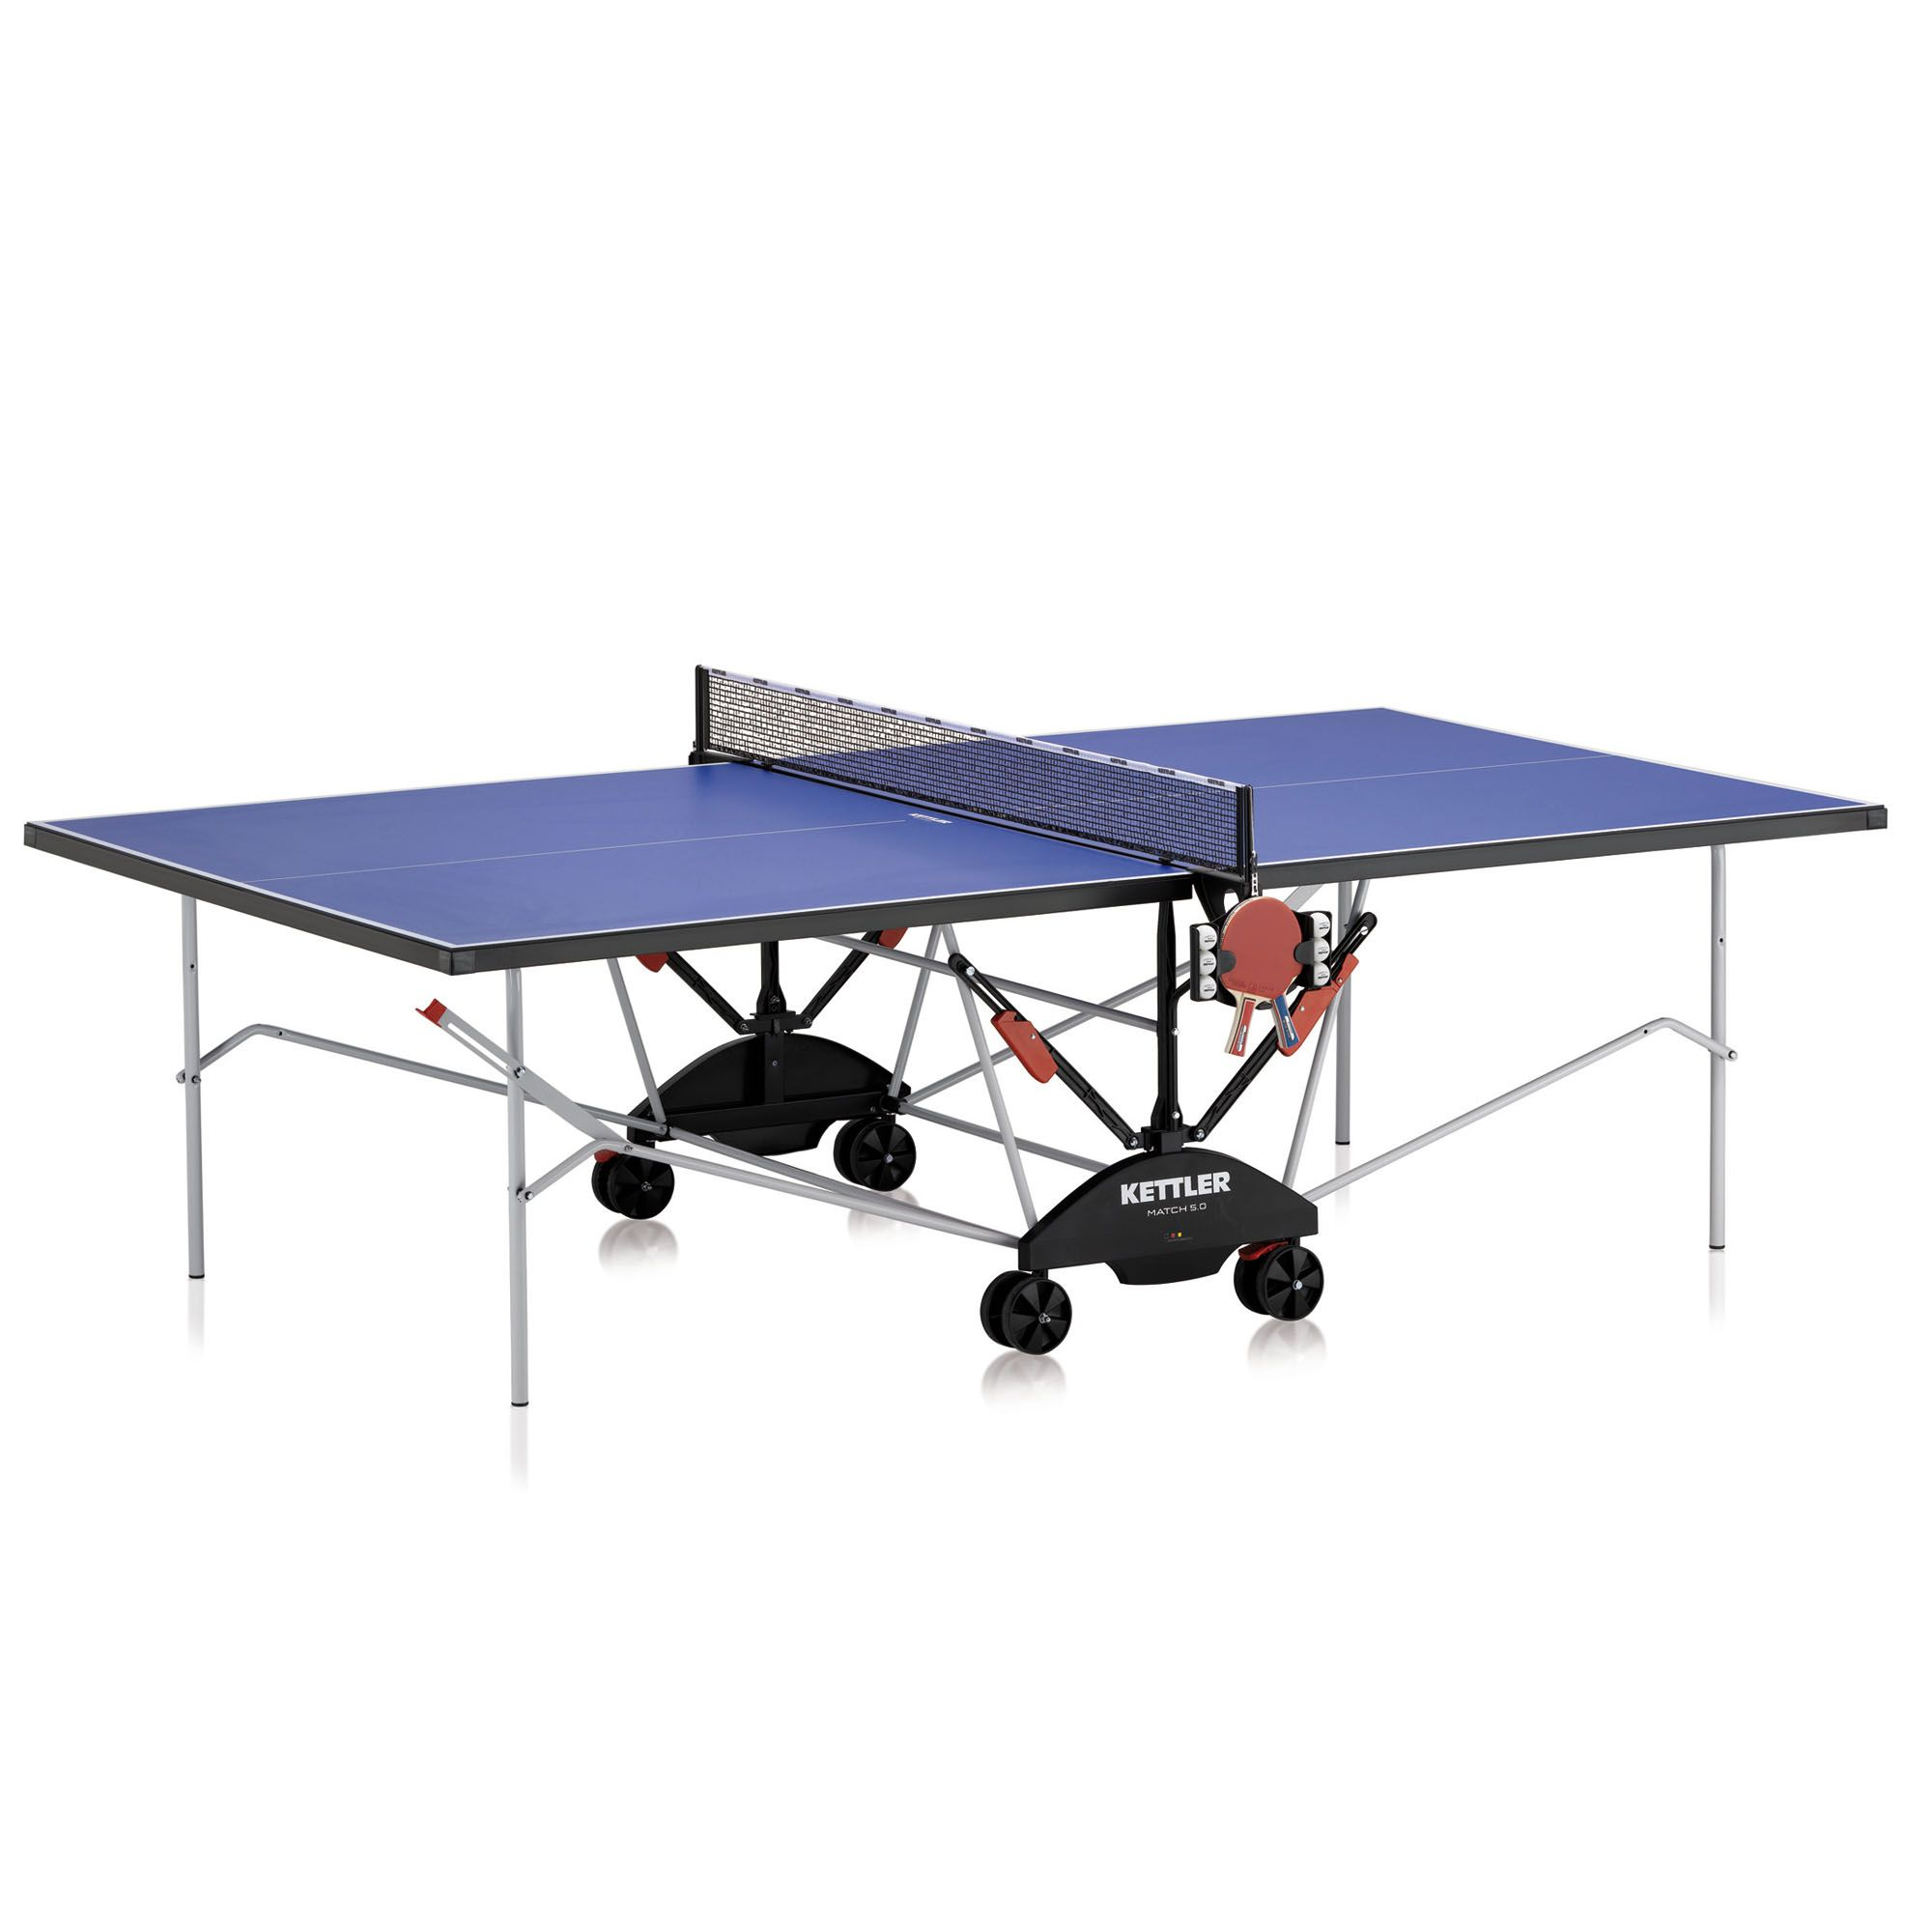 Kettler match 5 0 outdoor table tennis table for Table exterieur kettler